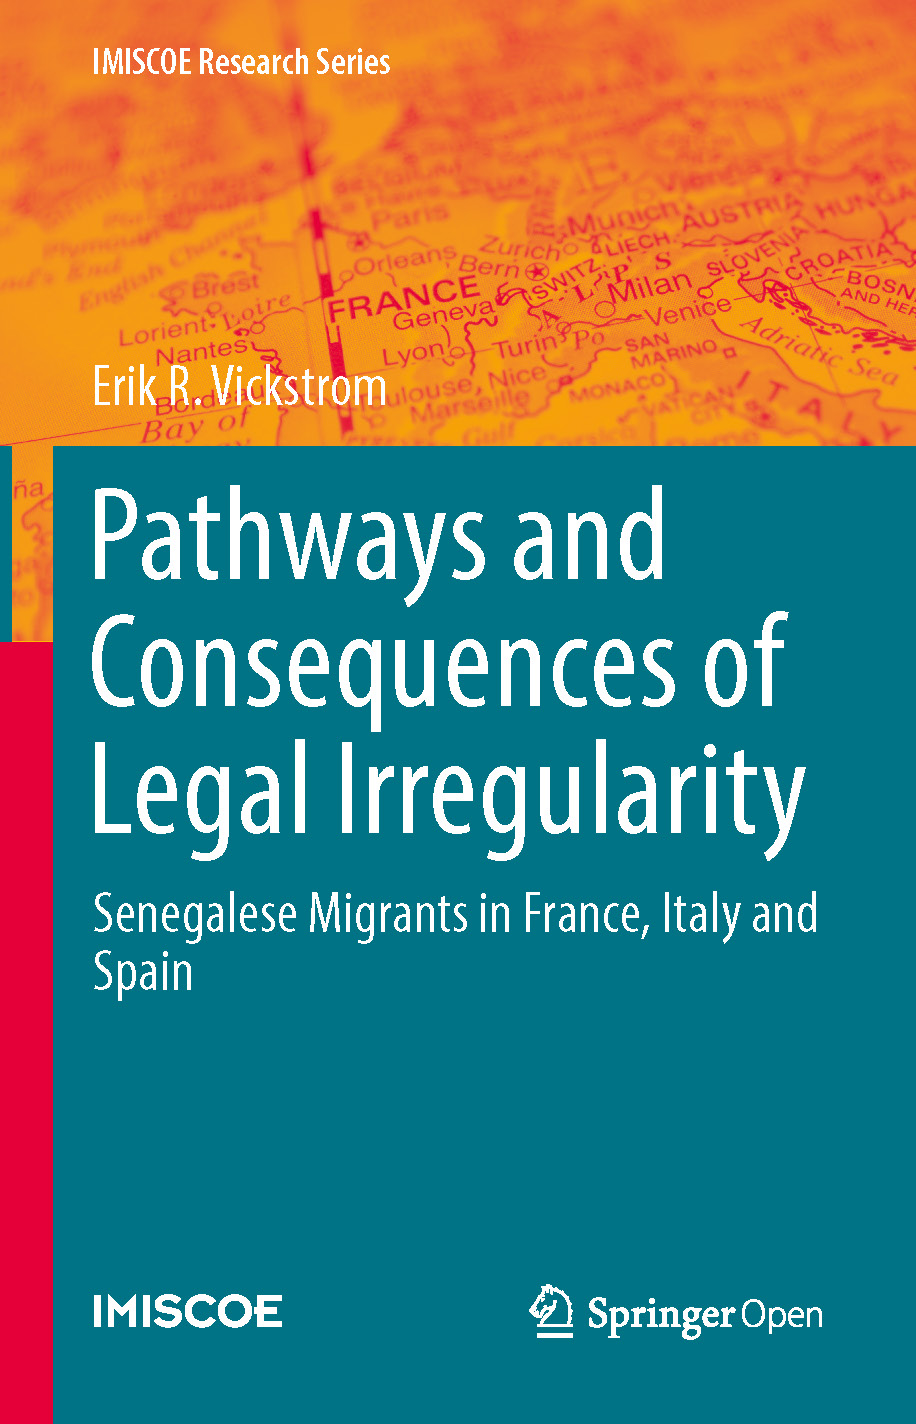 Cover of Pathways and Consequences of Legal Irregularity